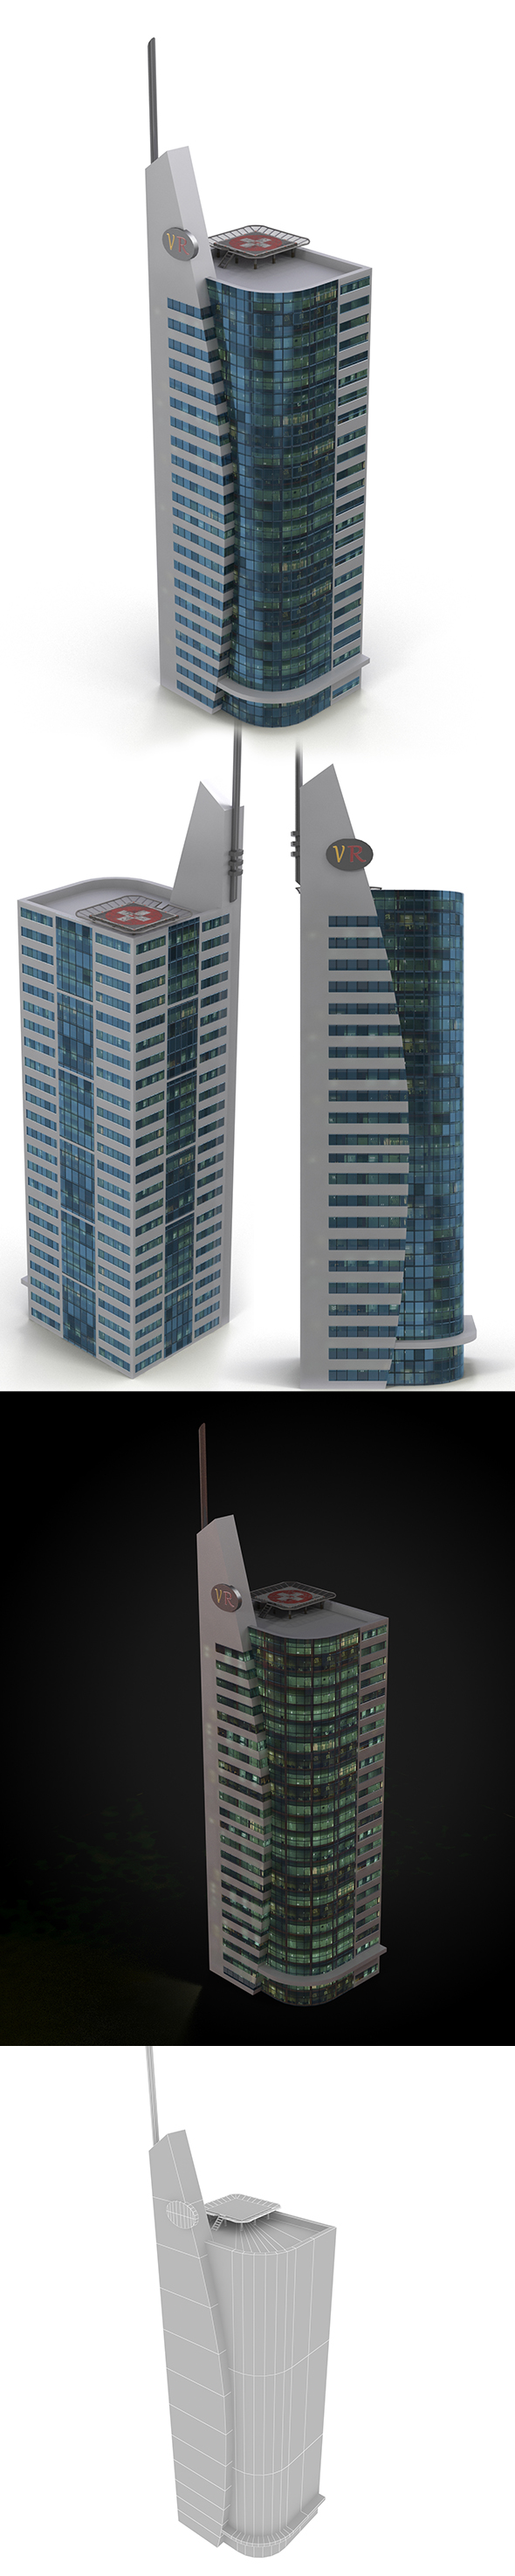 skyscraper_4 - 3DOcean Item for Sale